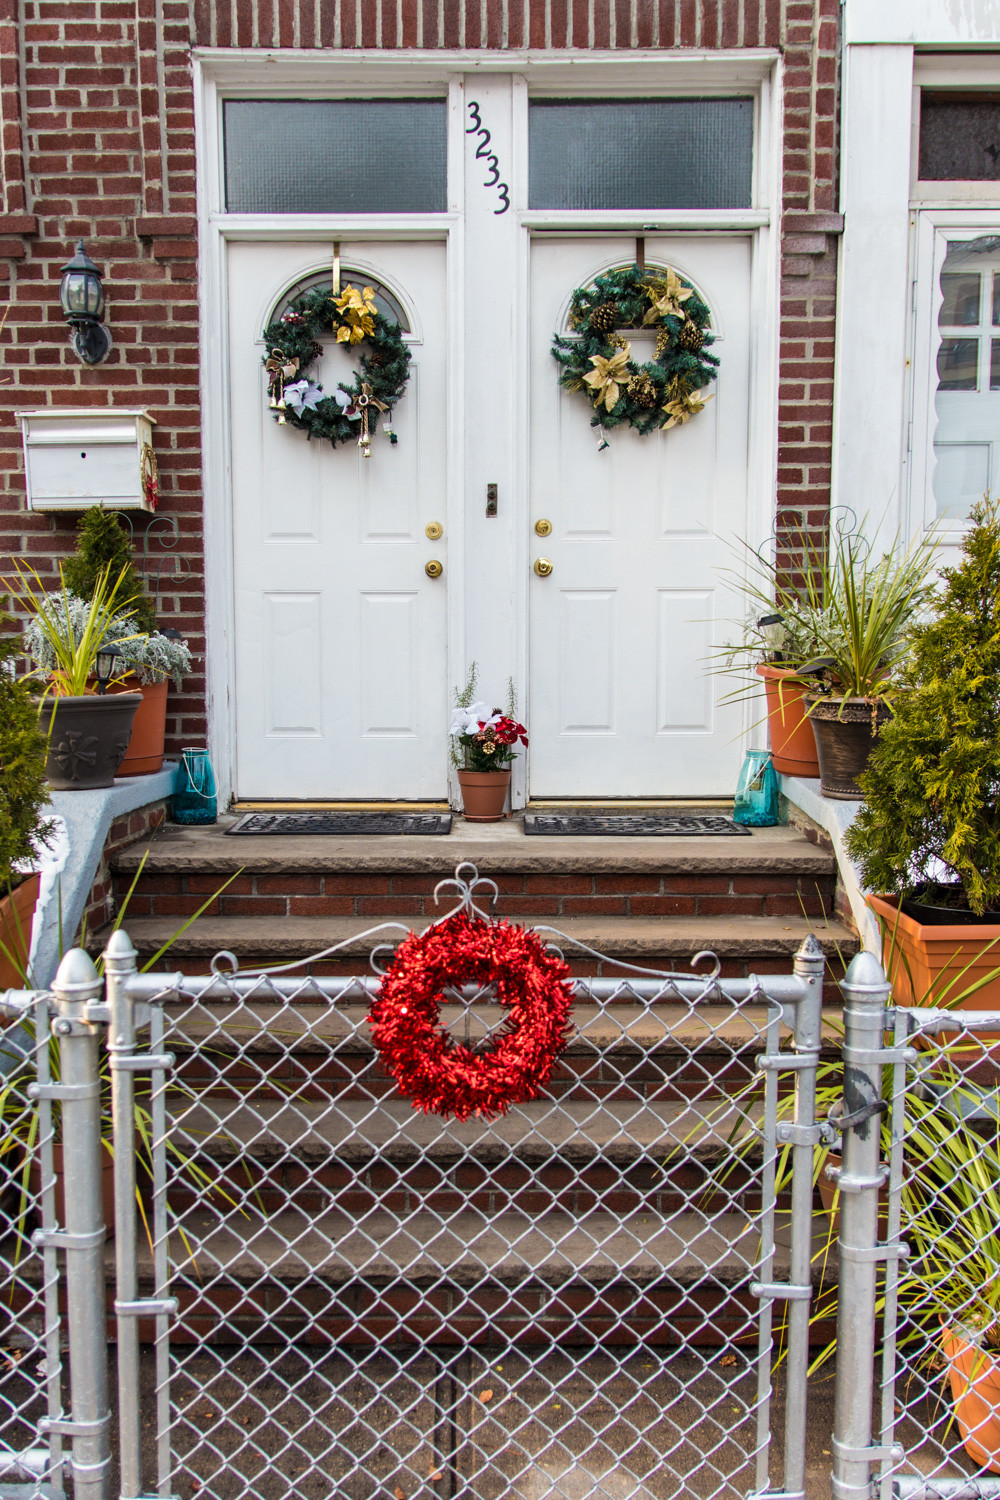 Wreaths are a common fixture for households celebrating Christmas. Given their circular nature with no beginning or end, wreaths symbolize the infinite nature of God.